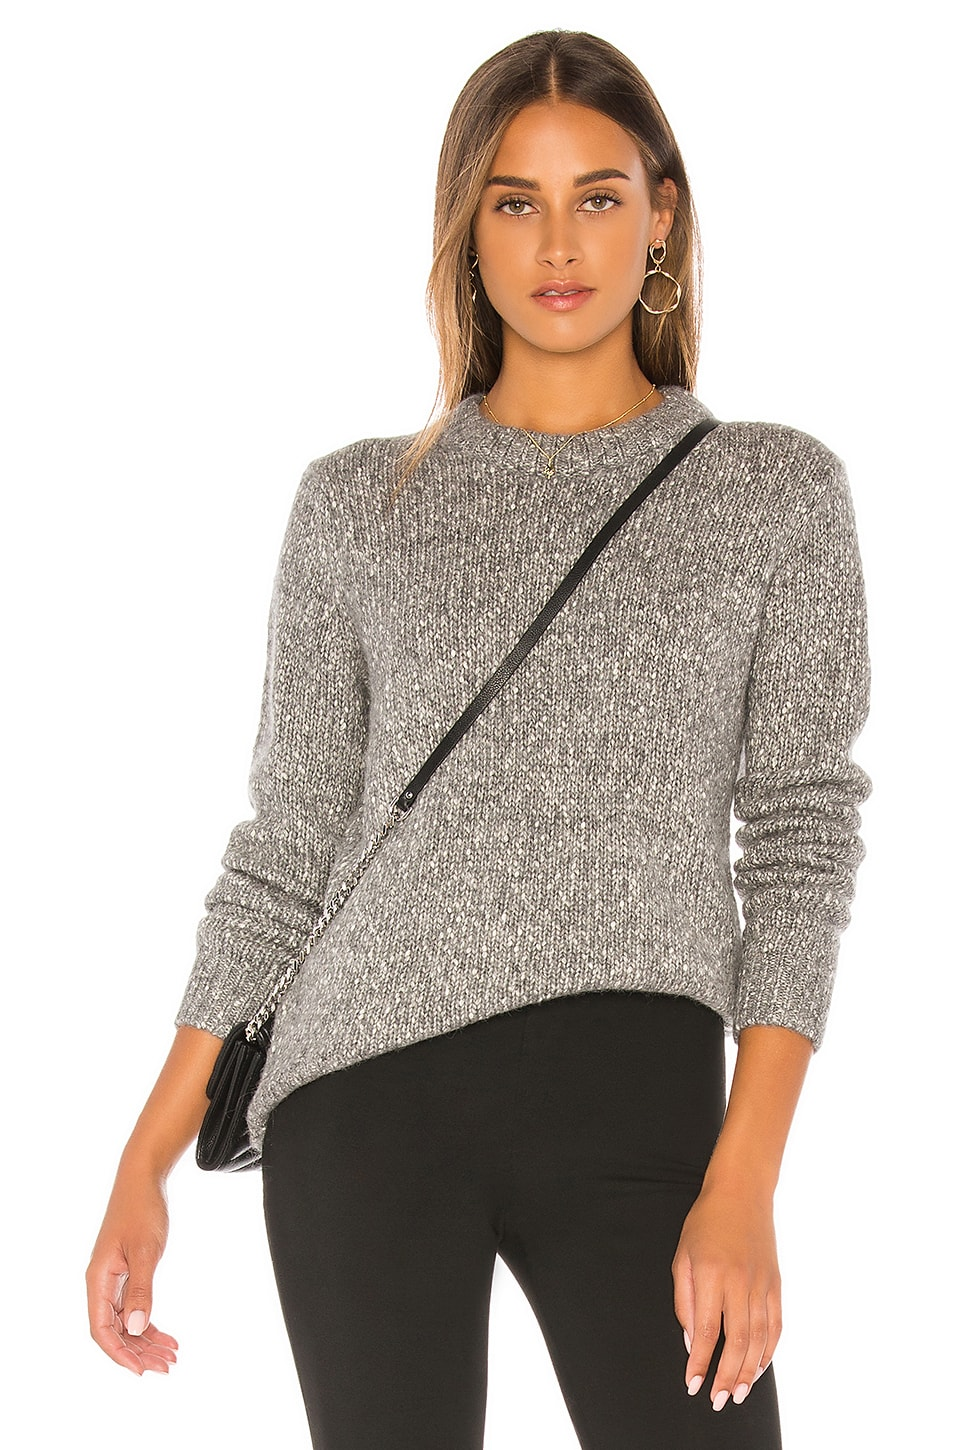 Theory Speckled Tweed Crew Sweater in Medium Heather Grey